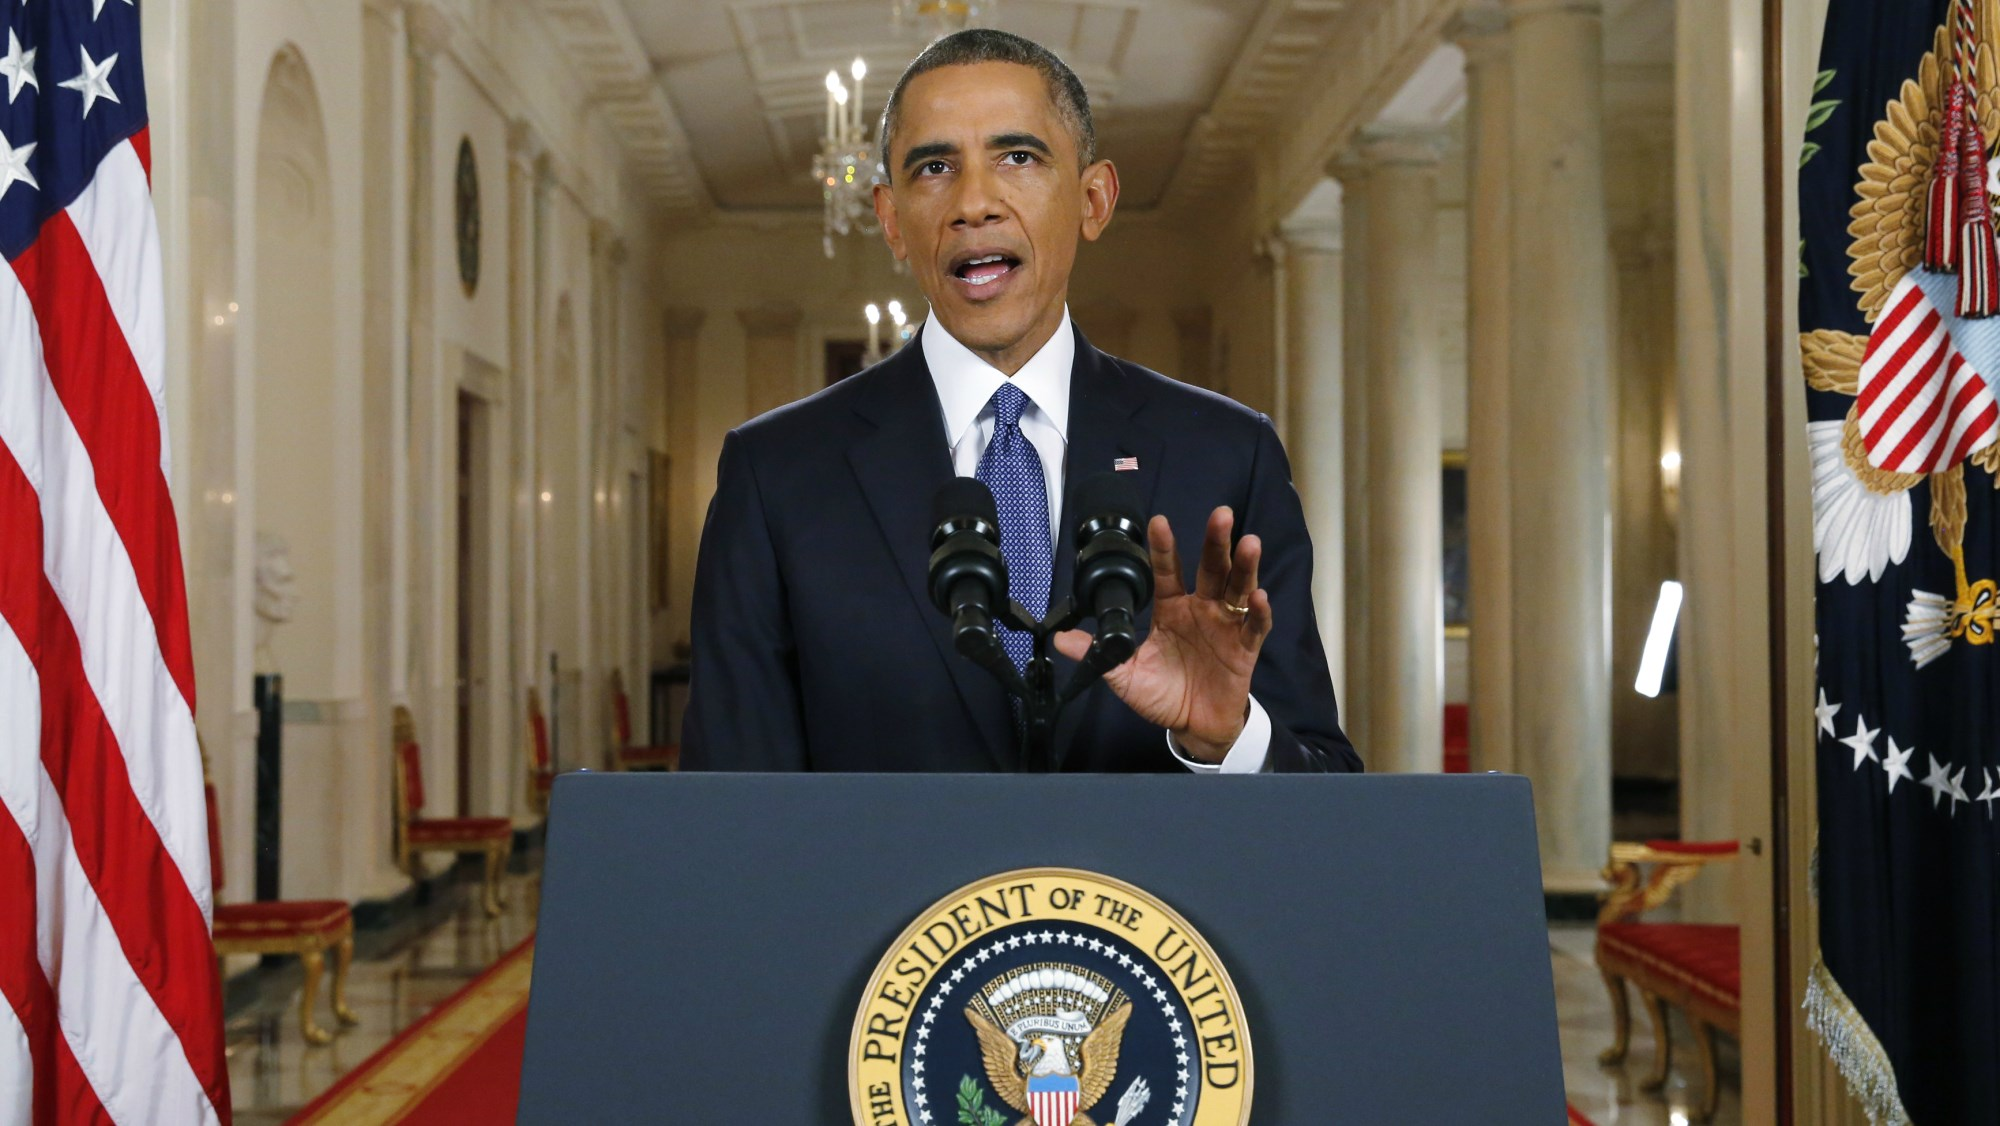 President Obama takes action on Immigration when Congress doesn't